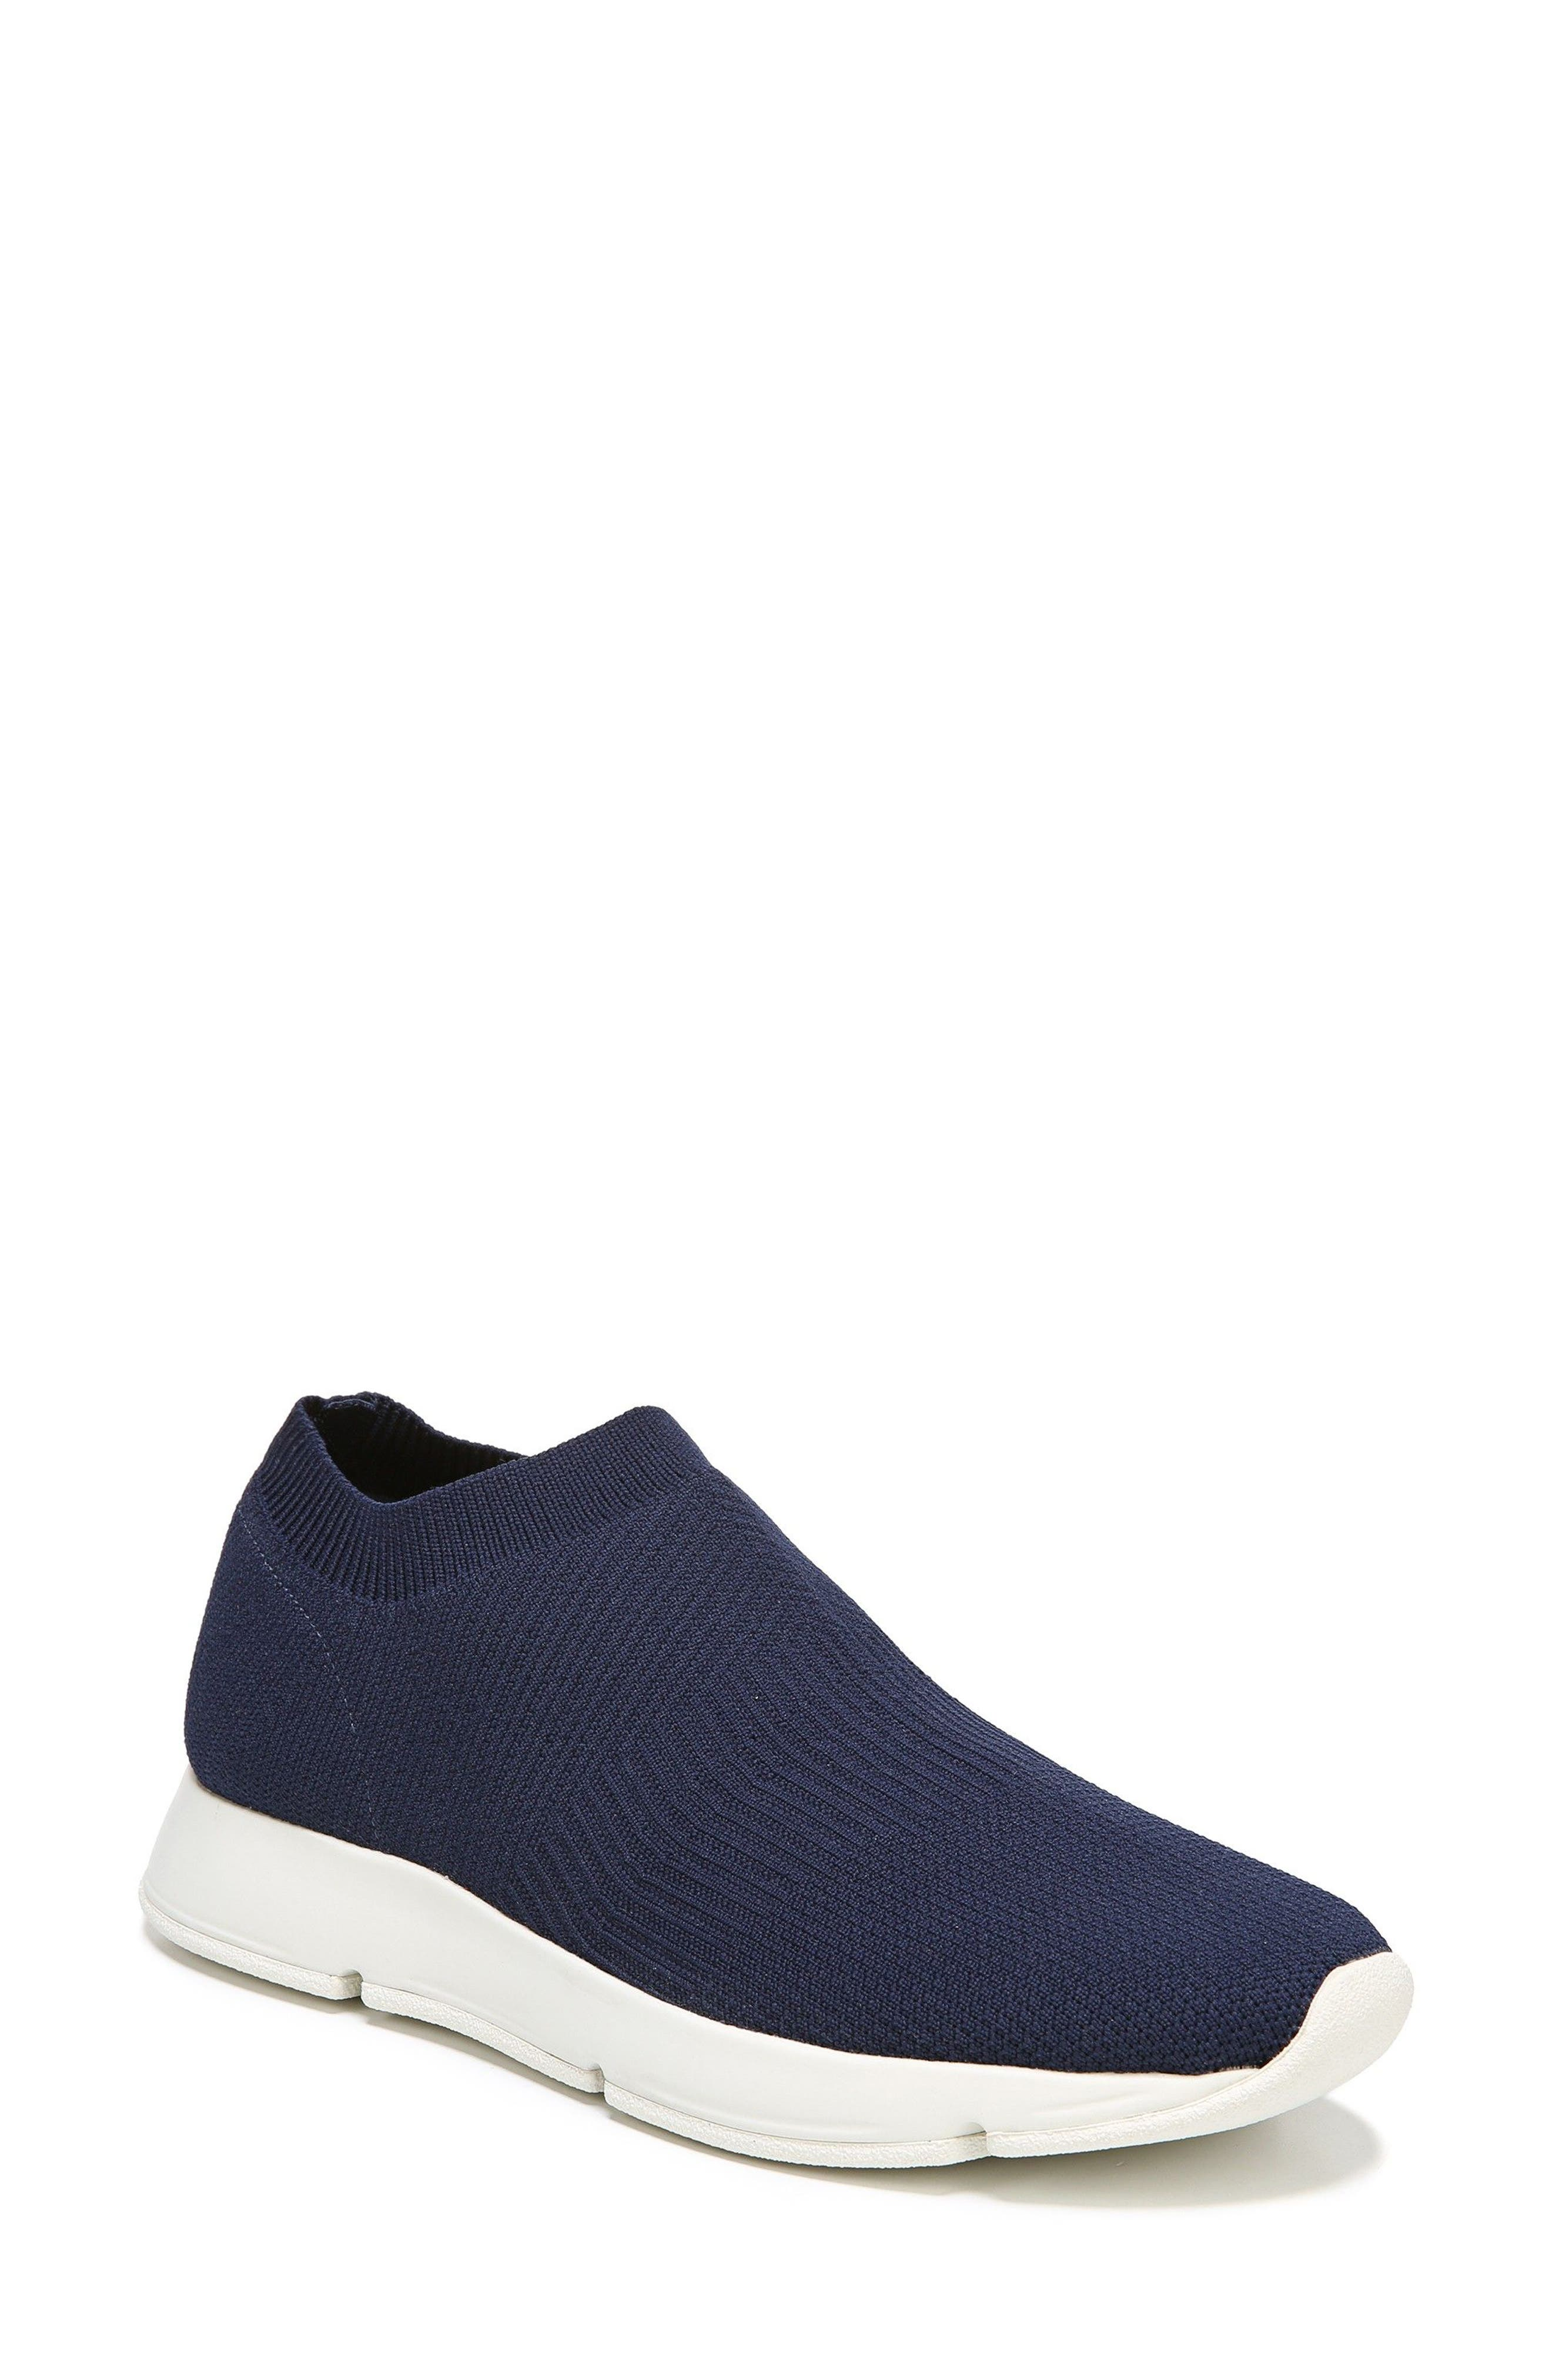 Theroux Slip-On Knit Sneaker,                         Main,                         color, Navy